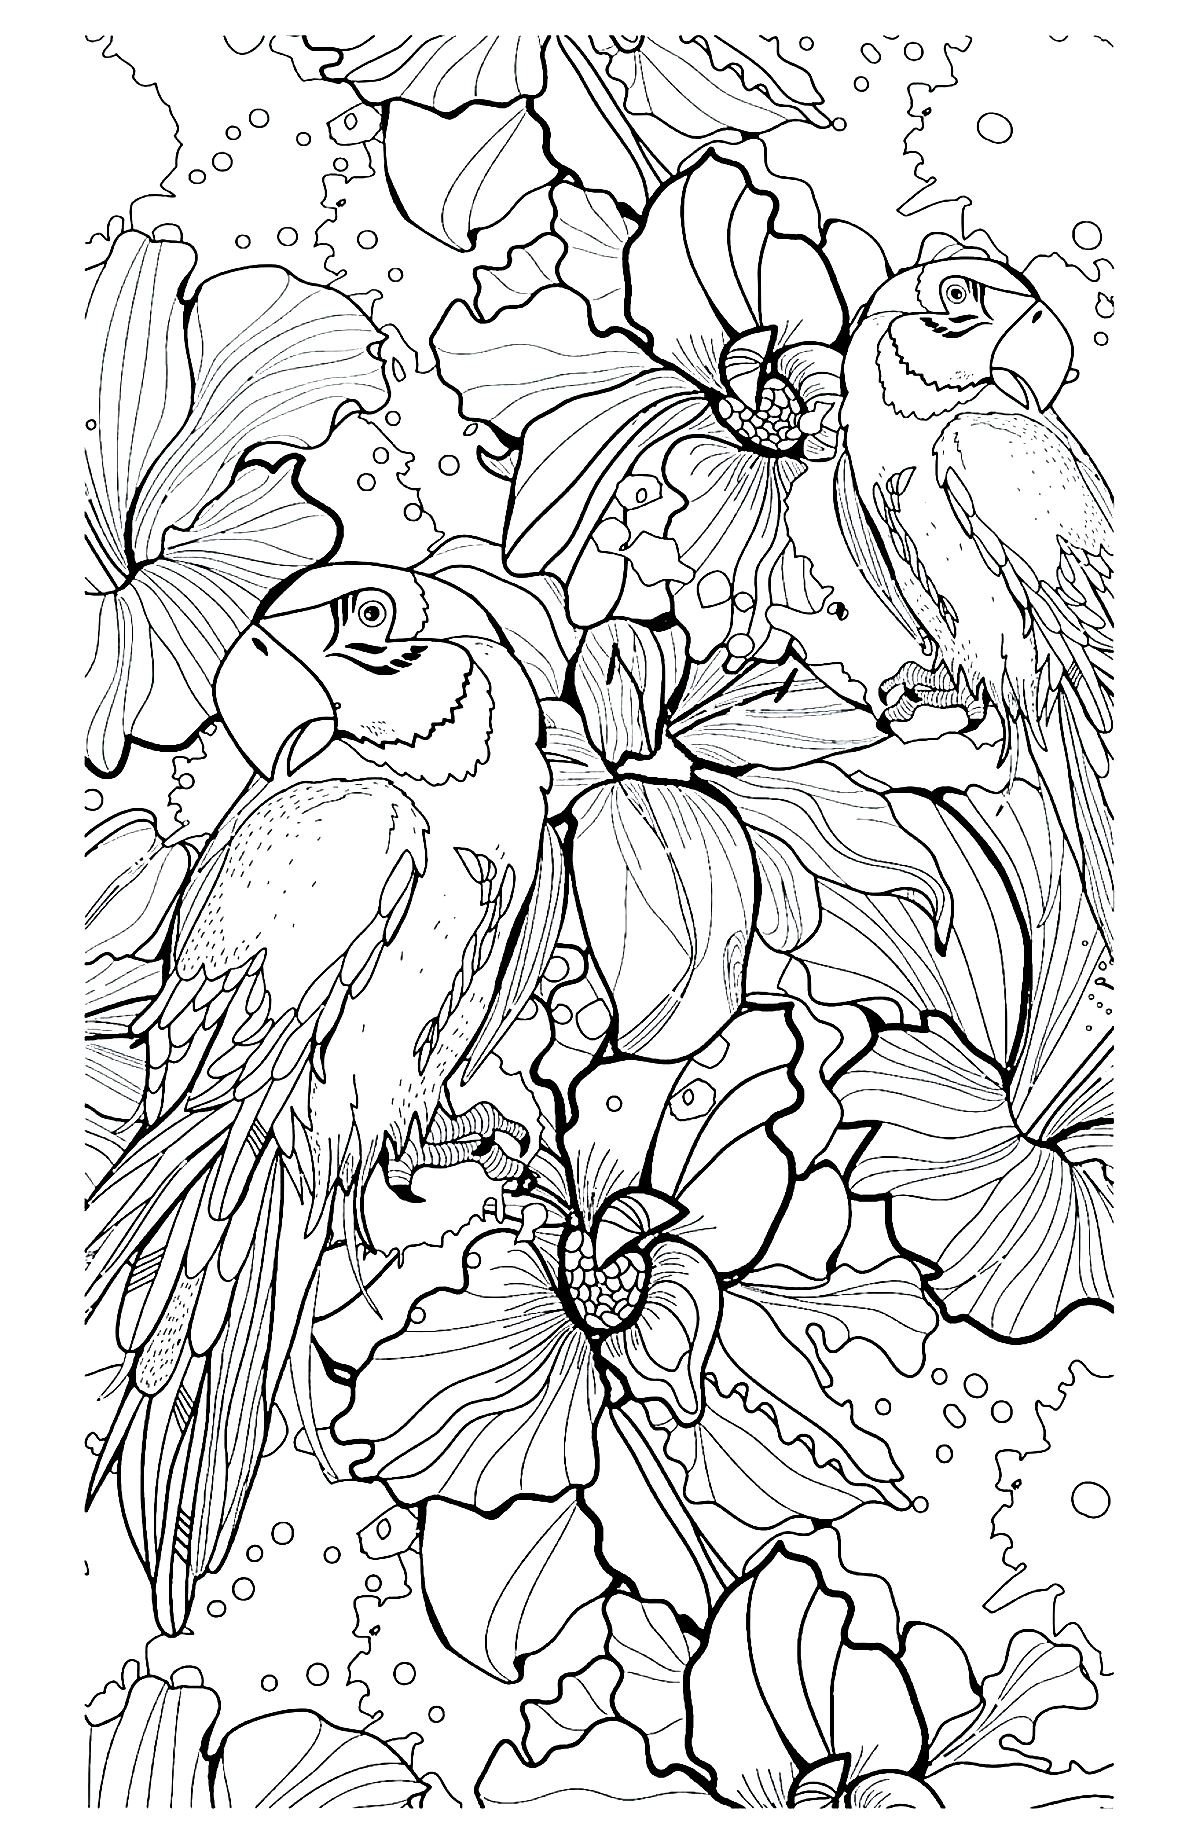 Animal coloring pages for adults - Complex Coloring Page Of Parrots From The Gallery Animals